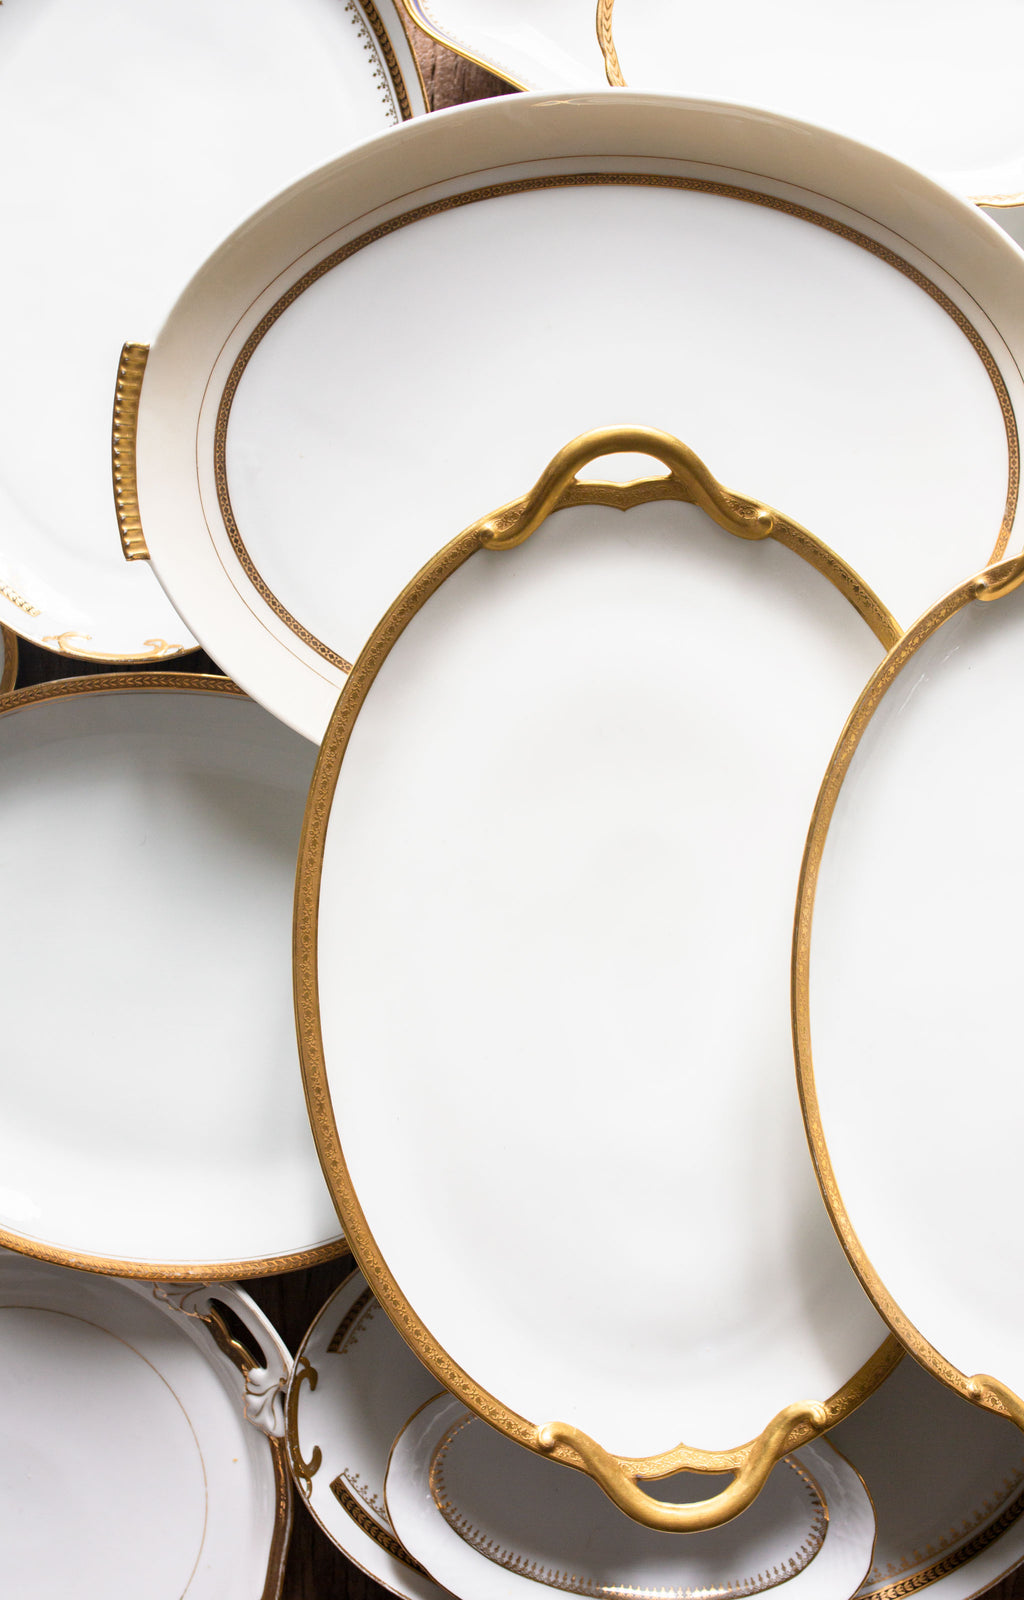 Antique gold and white rental serving dishes from Madame de la Maison